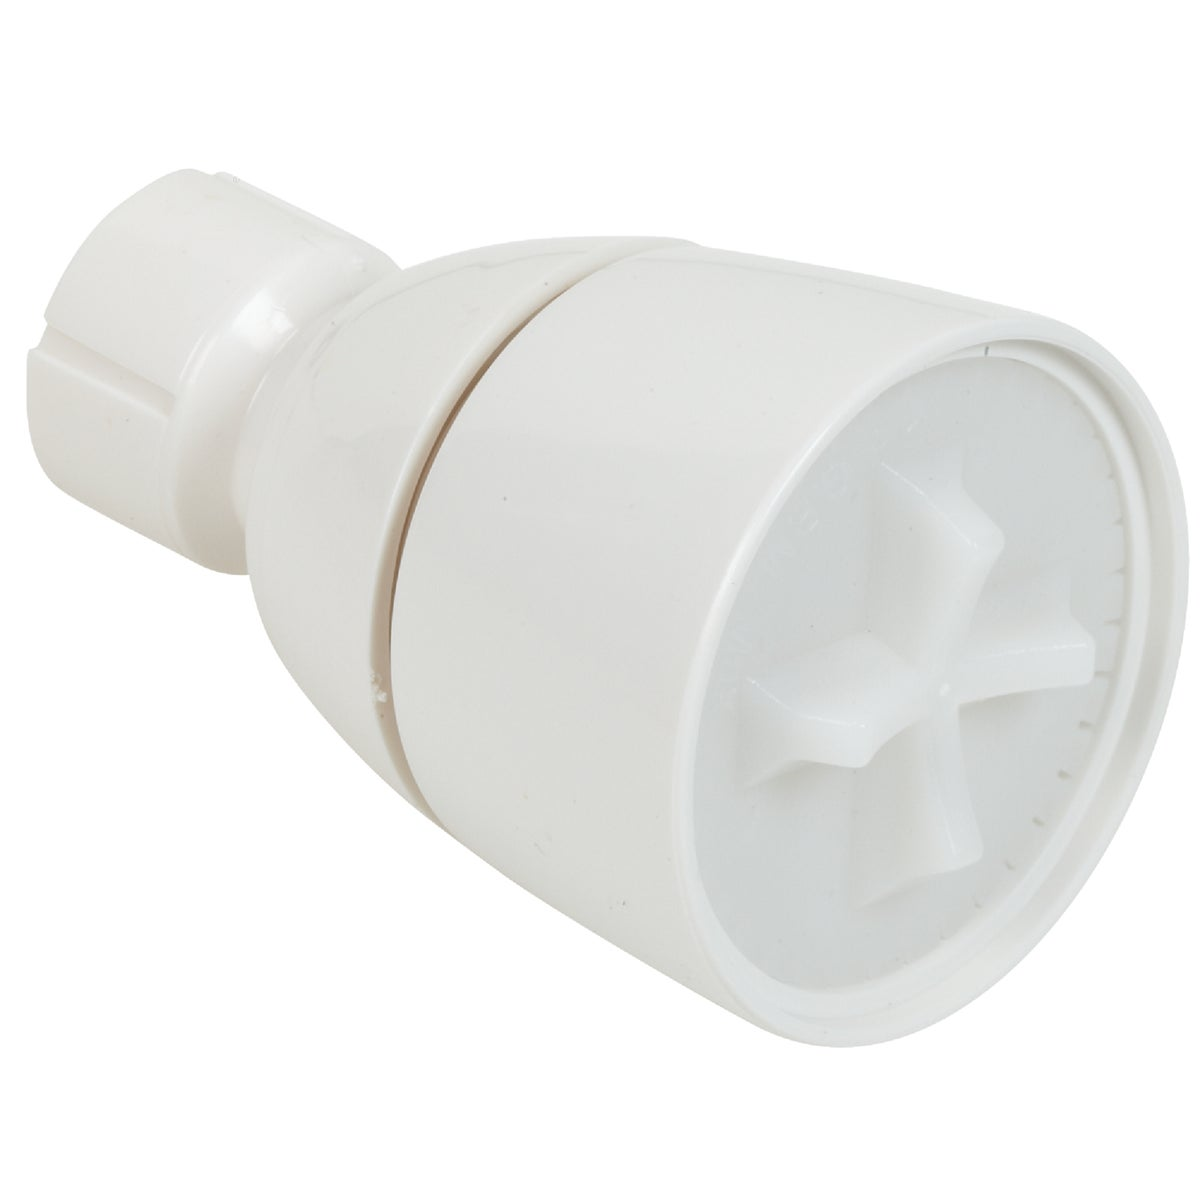 WHITE SGL ADJ SHOWERHEAD - 483443 by Do it Best